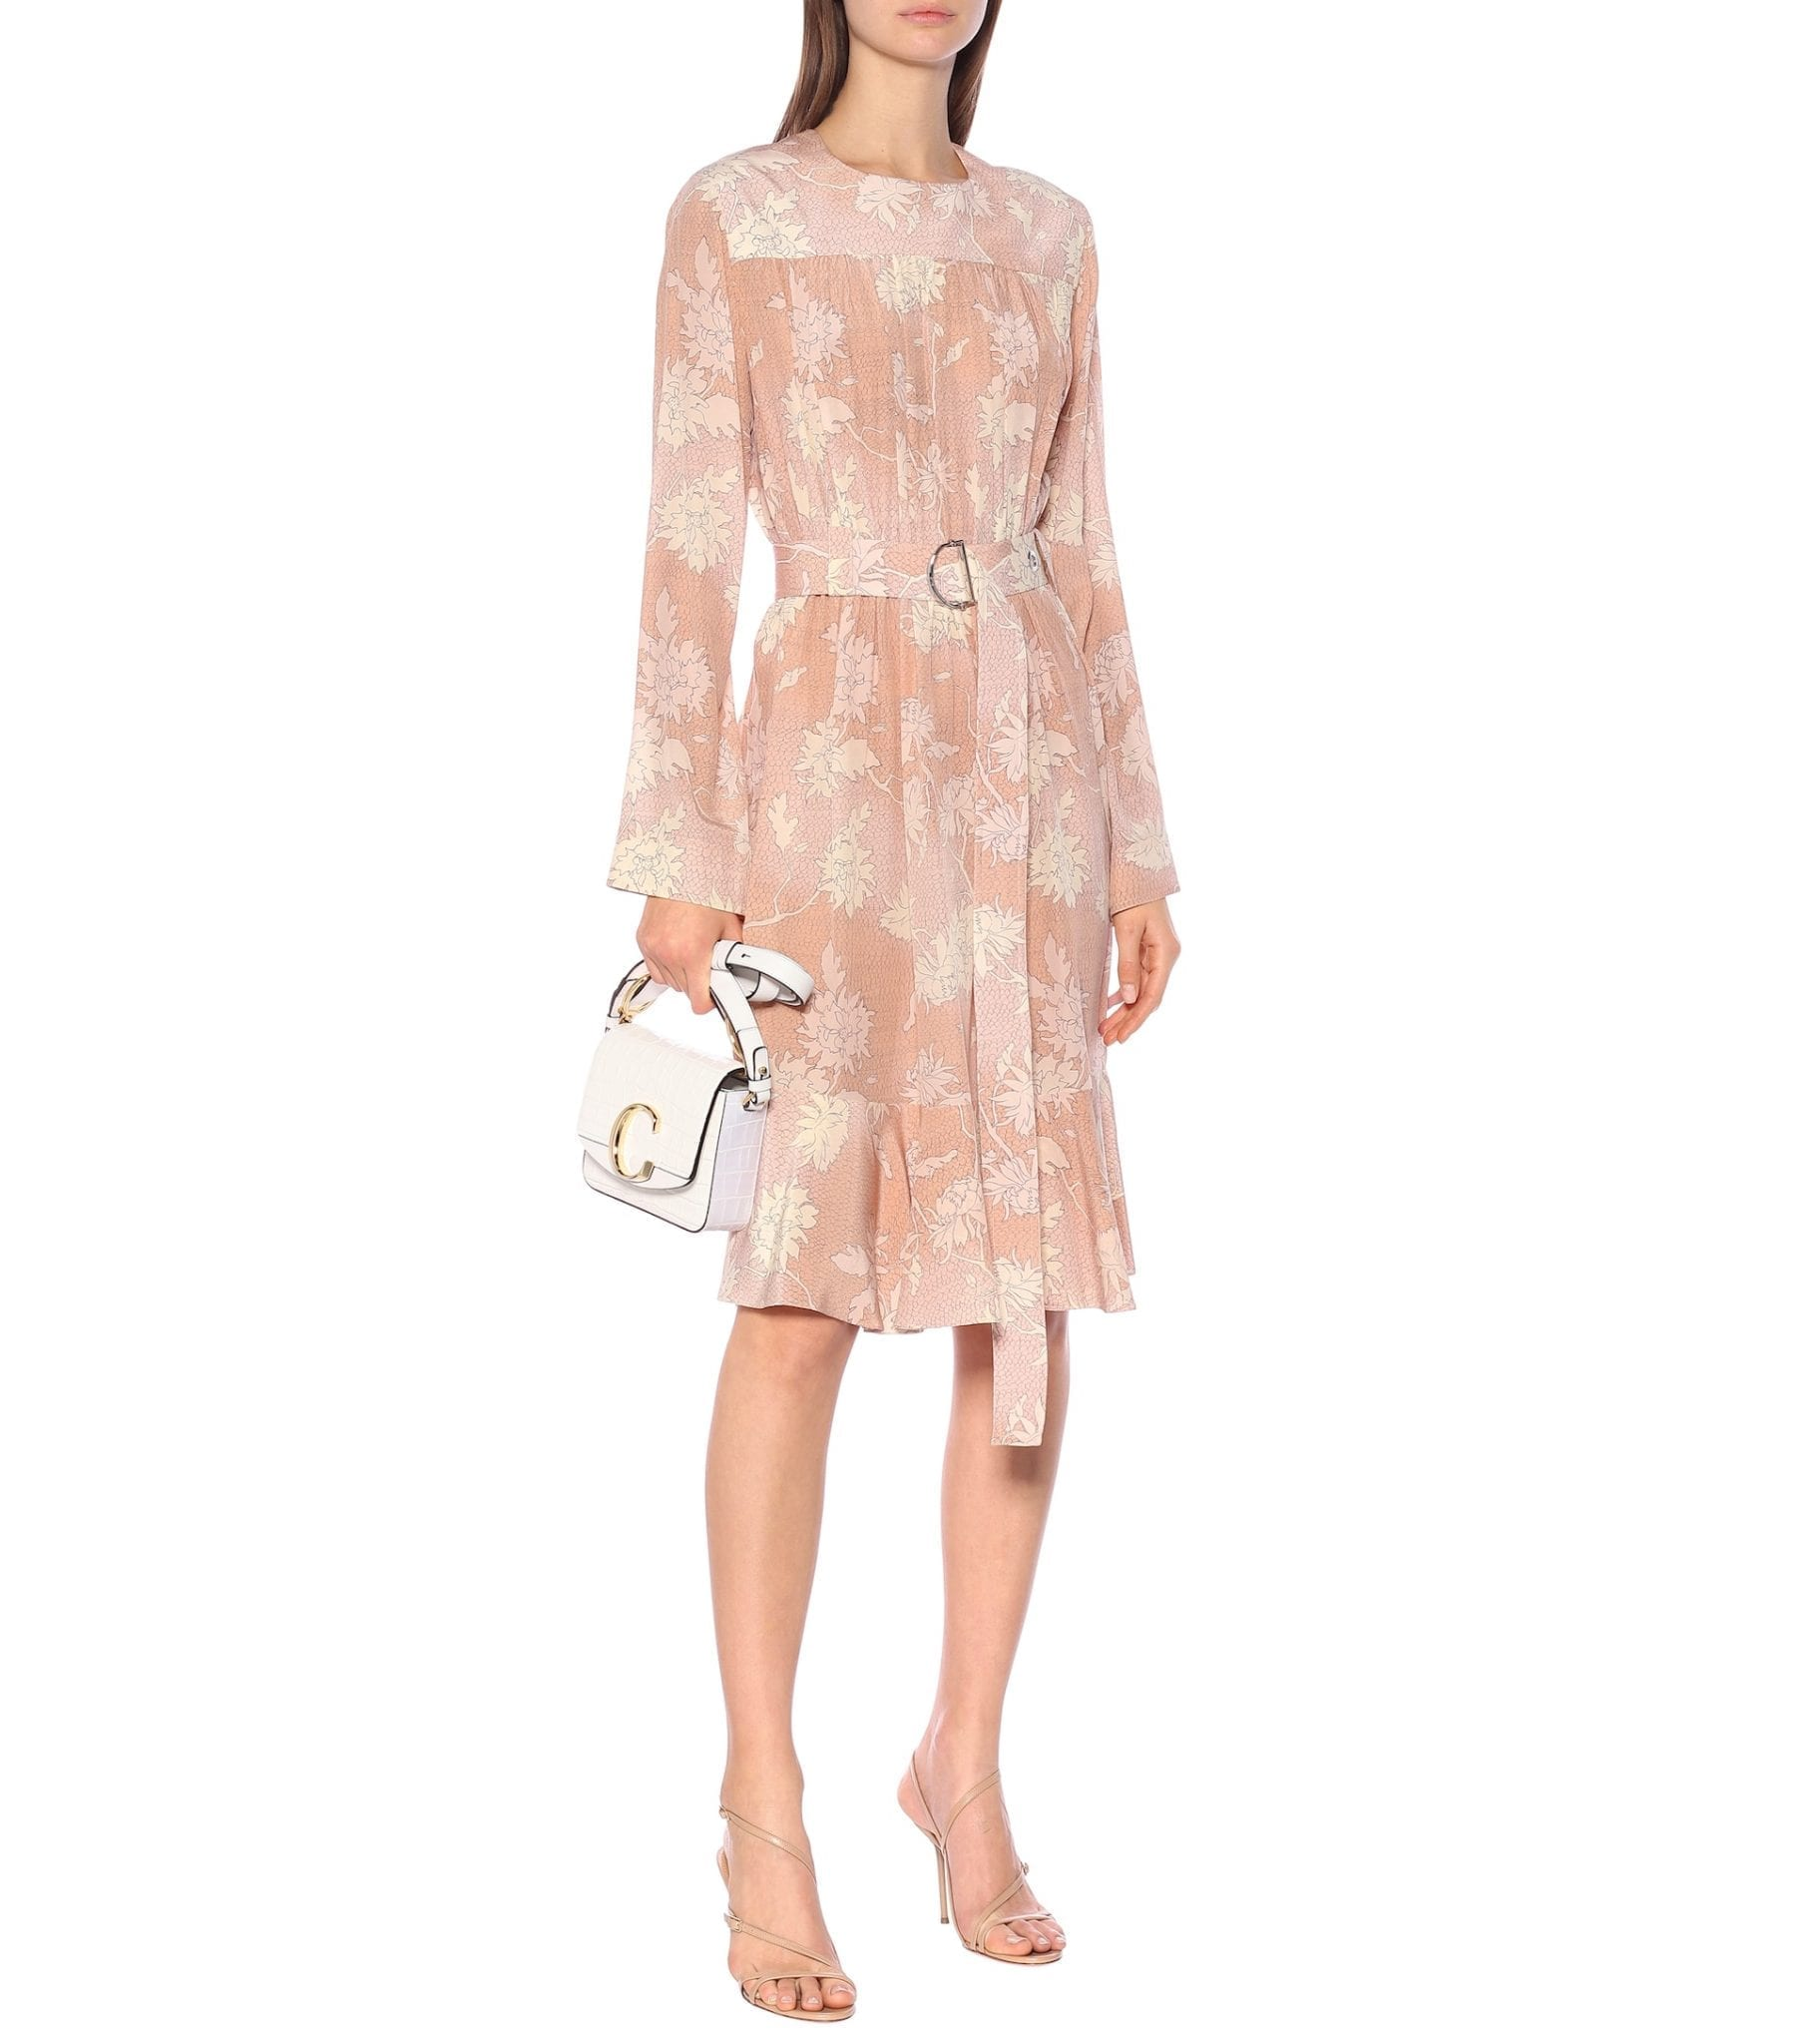 CHLOÉ Floral Silk-Satin Dress